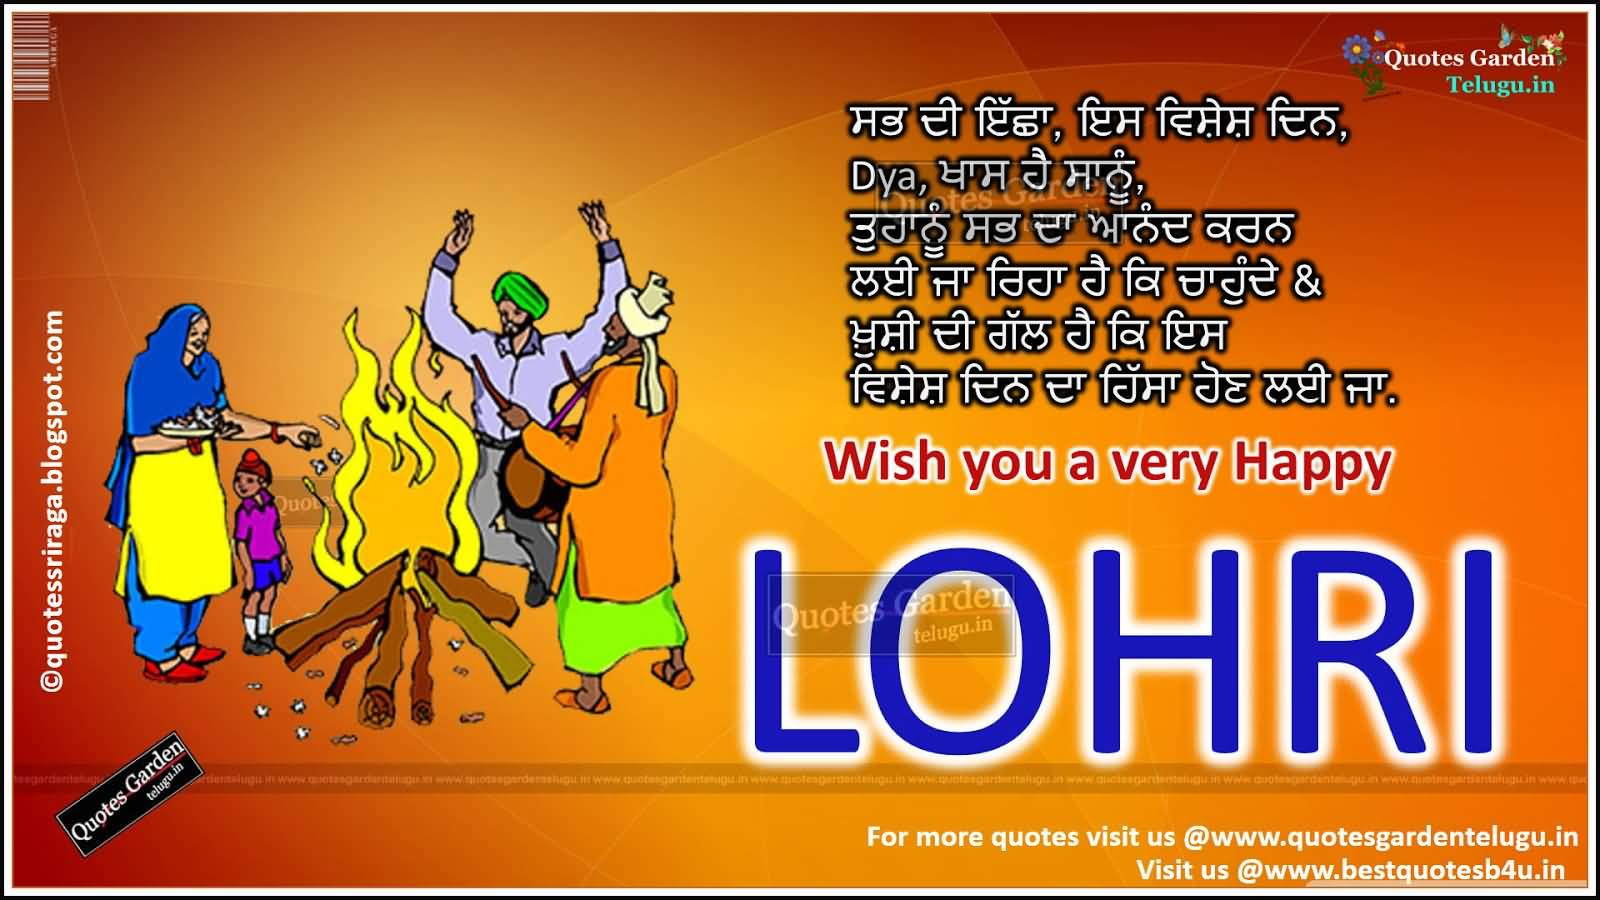 55 most beautiful lohri wish pictures and photos wish you a very happy lohri greeting card m4hsunfo